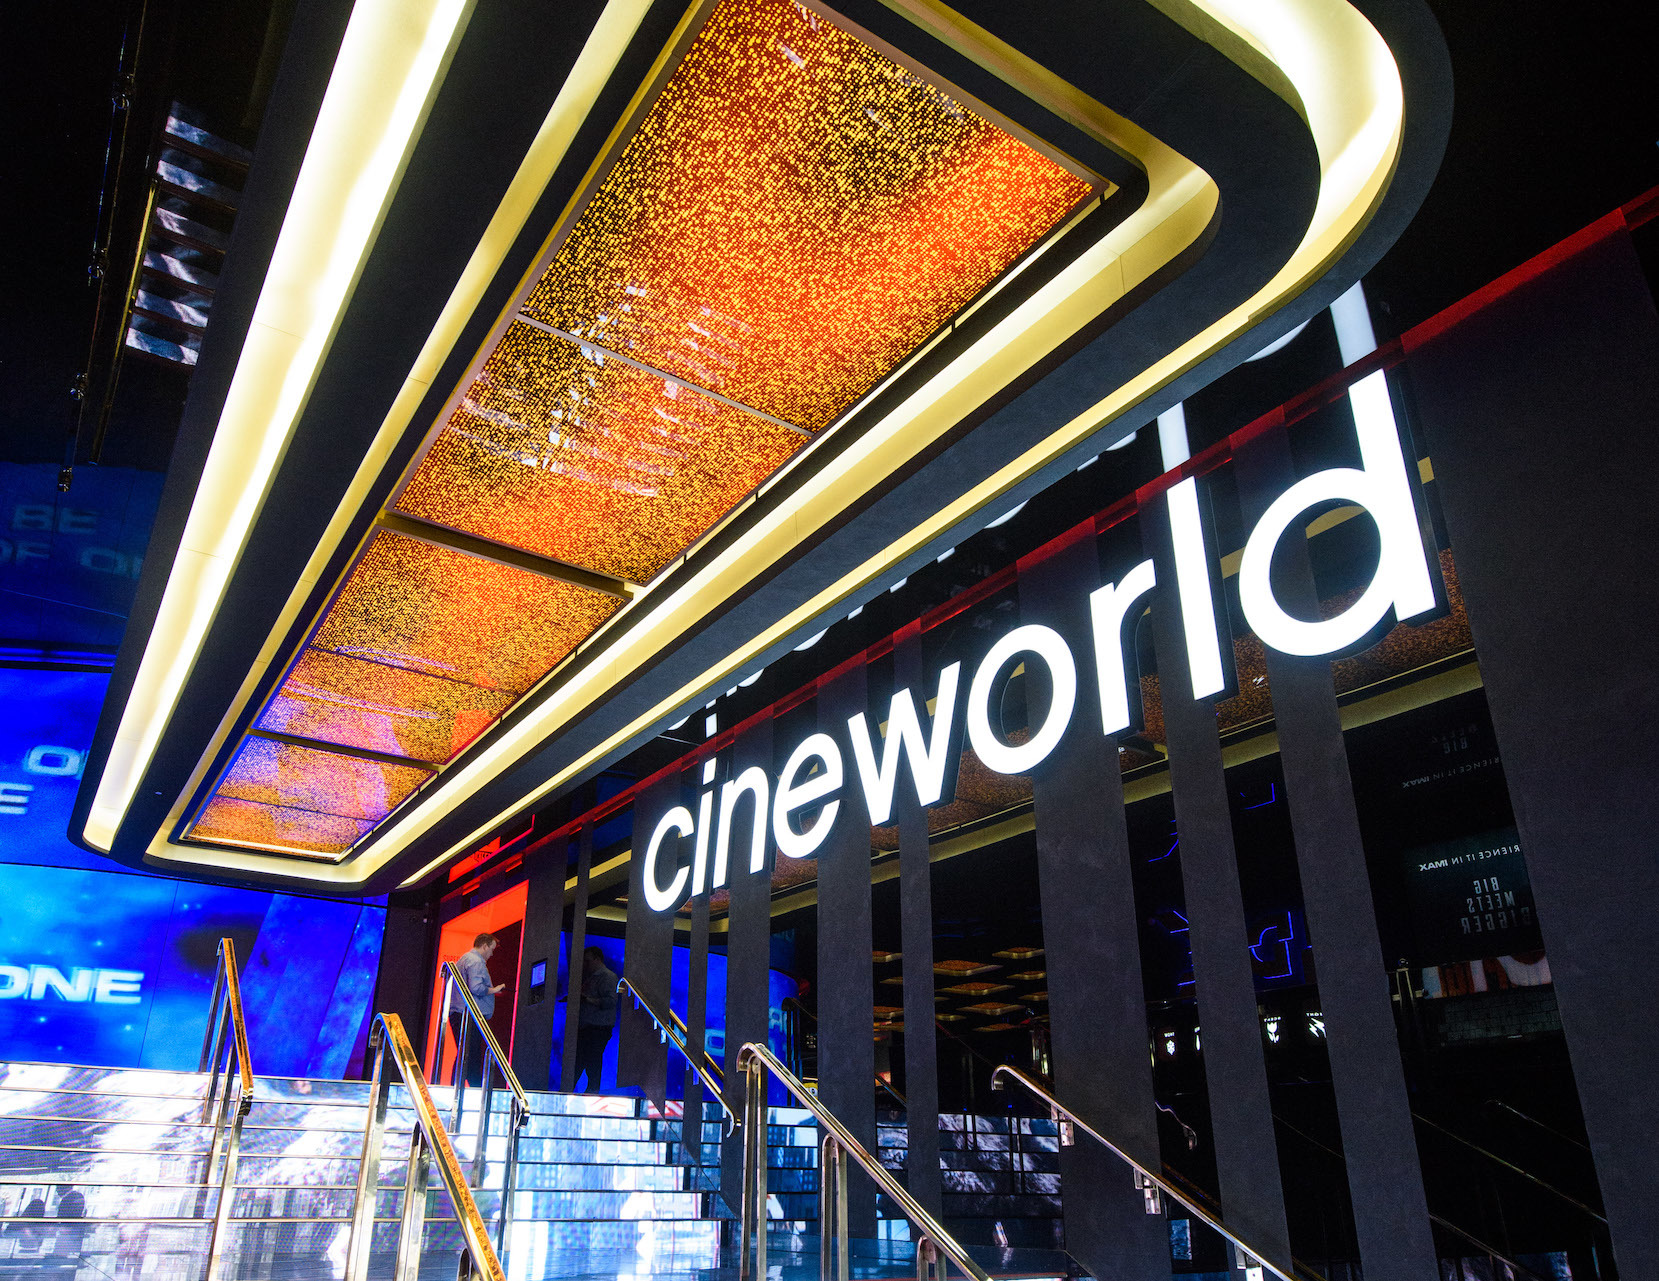 Cineworld and Picturehouse cinemas to reopen in July